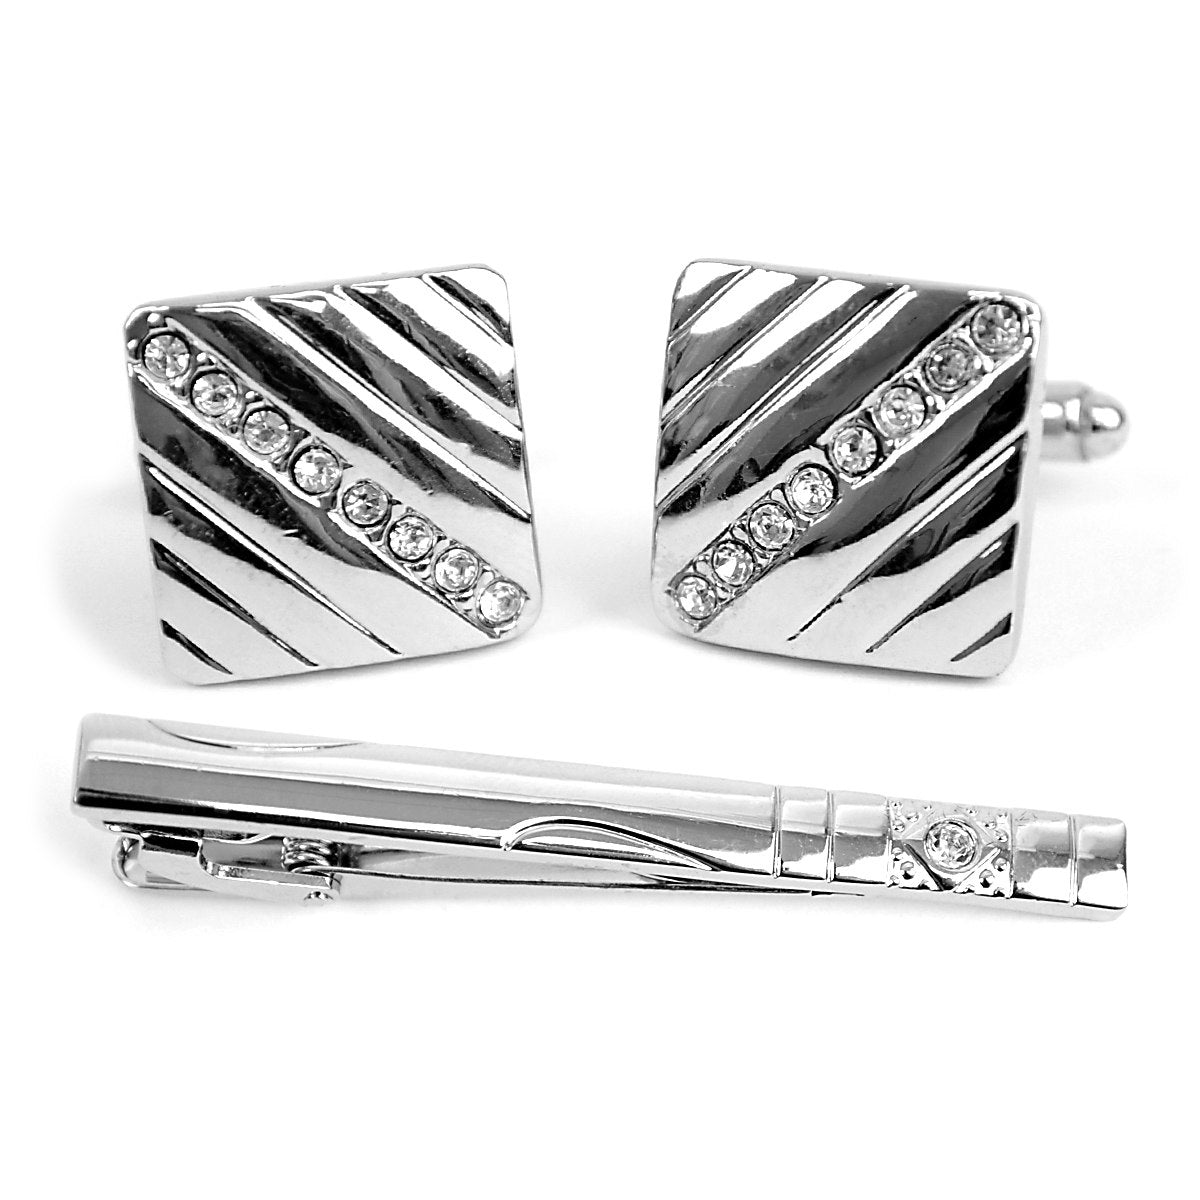 Cuff-link and Tie Bar Set CTB2304 - Church Suits For Less